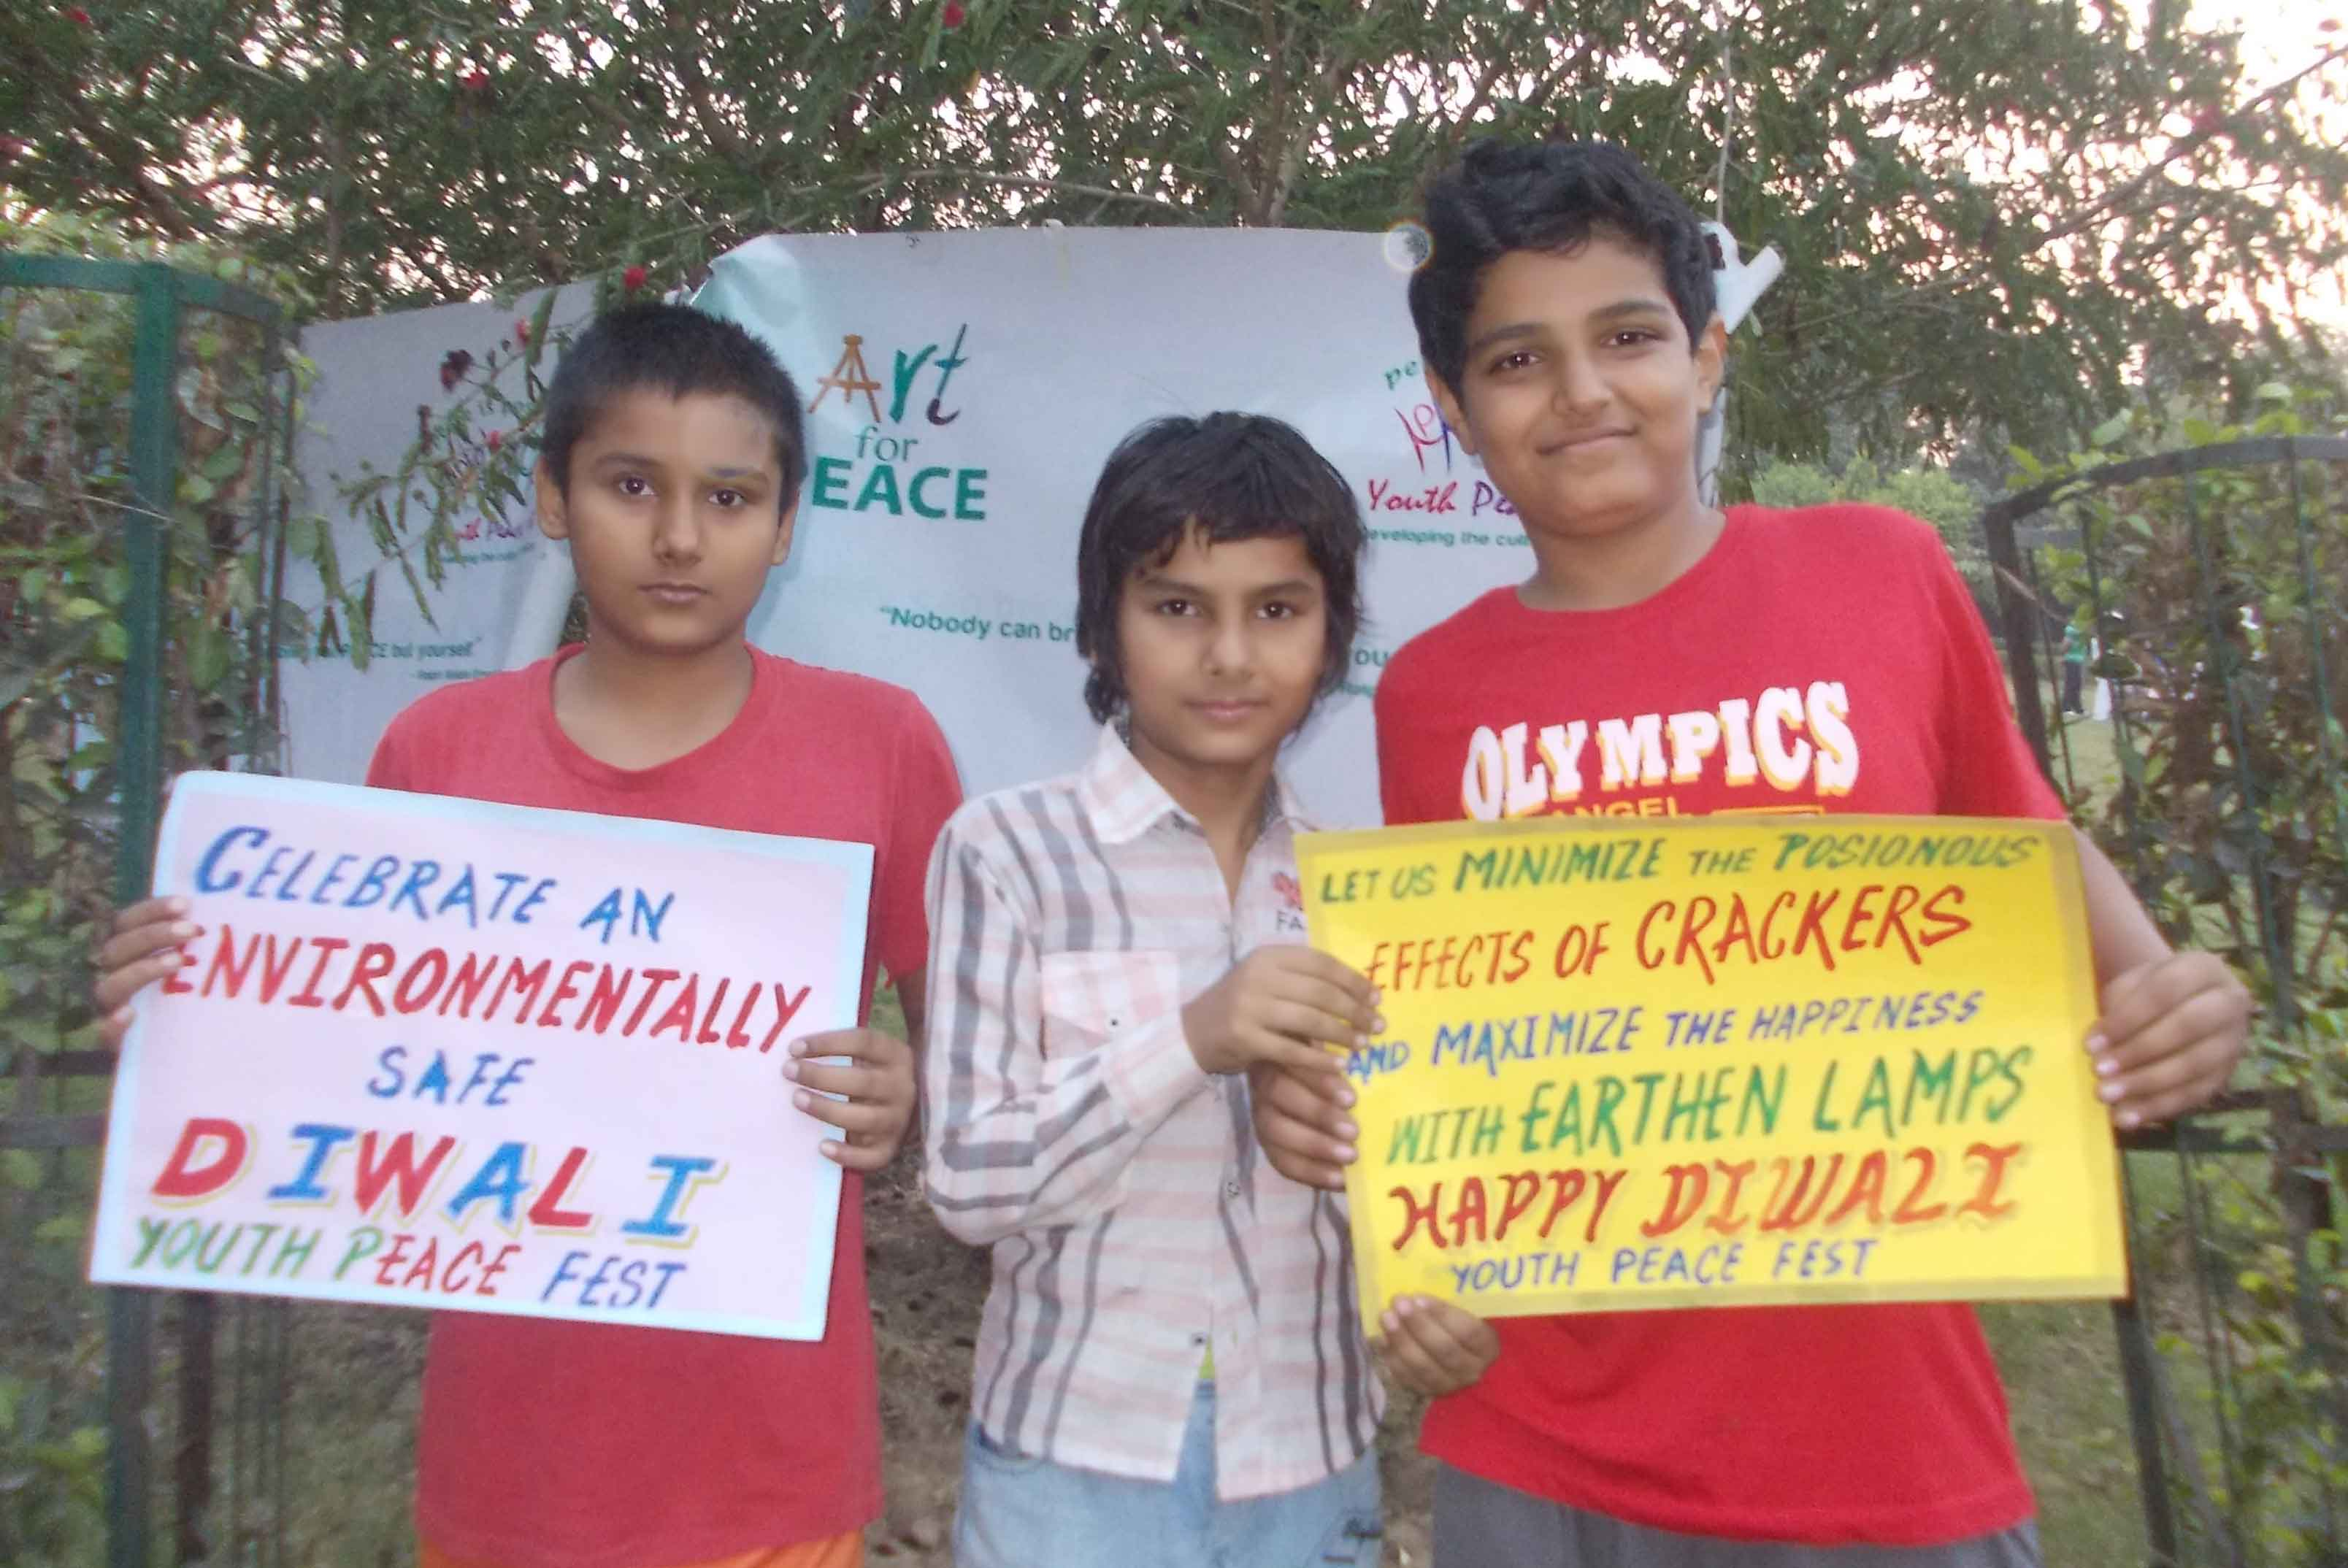 YPF Say no to crackers (6)